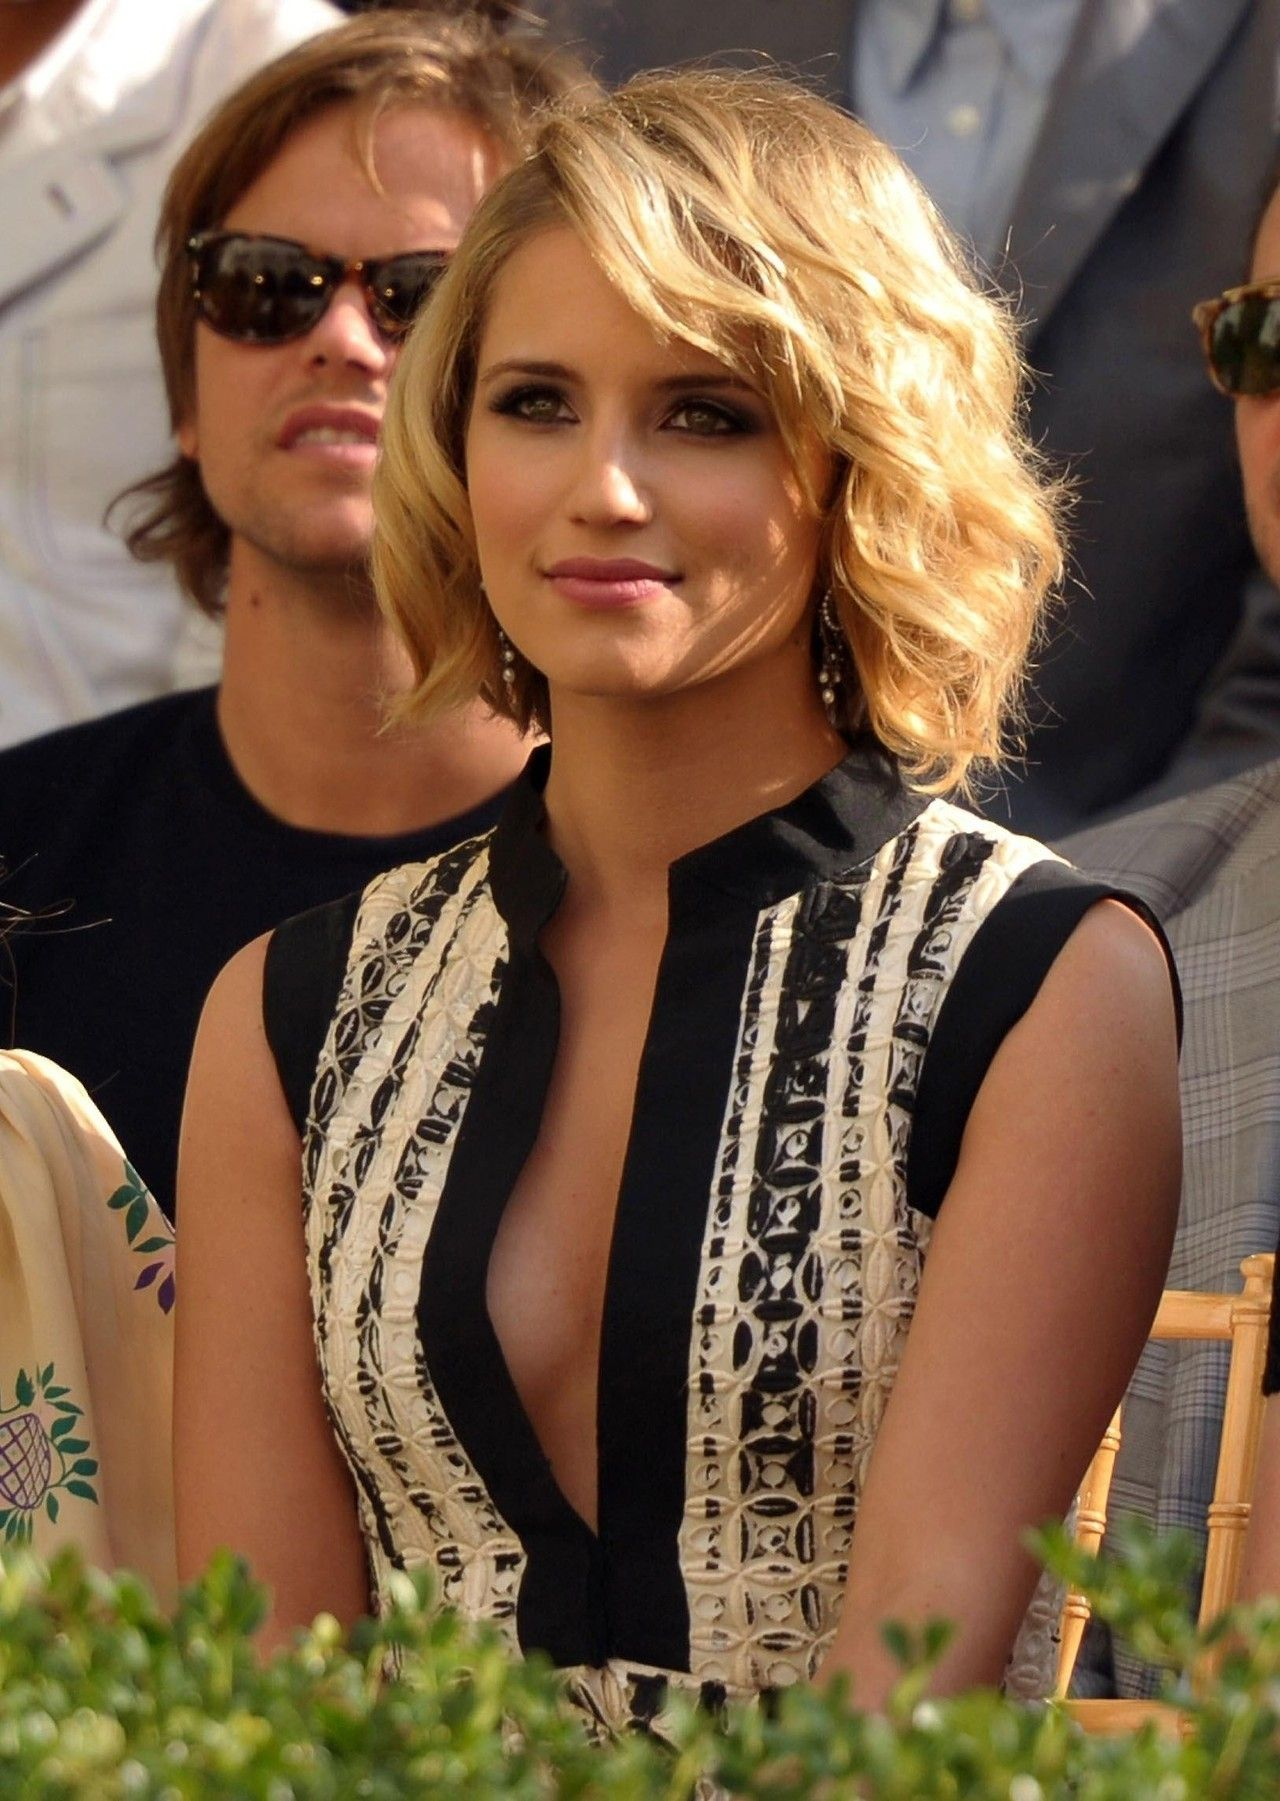 TheFappening Dianna Agron nude (15 photo), Ass, Sideboobs, Boobs, bra 2017